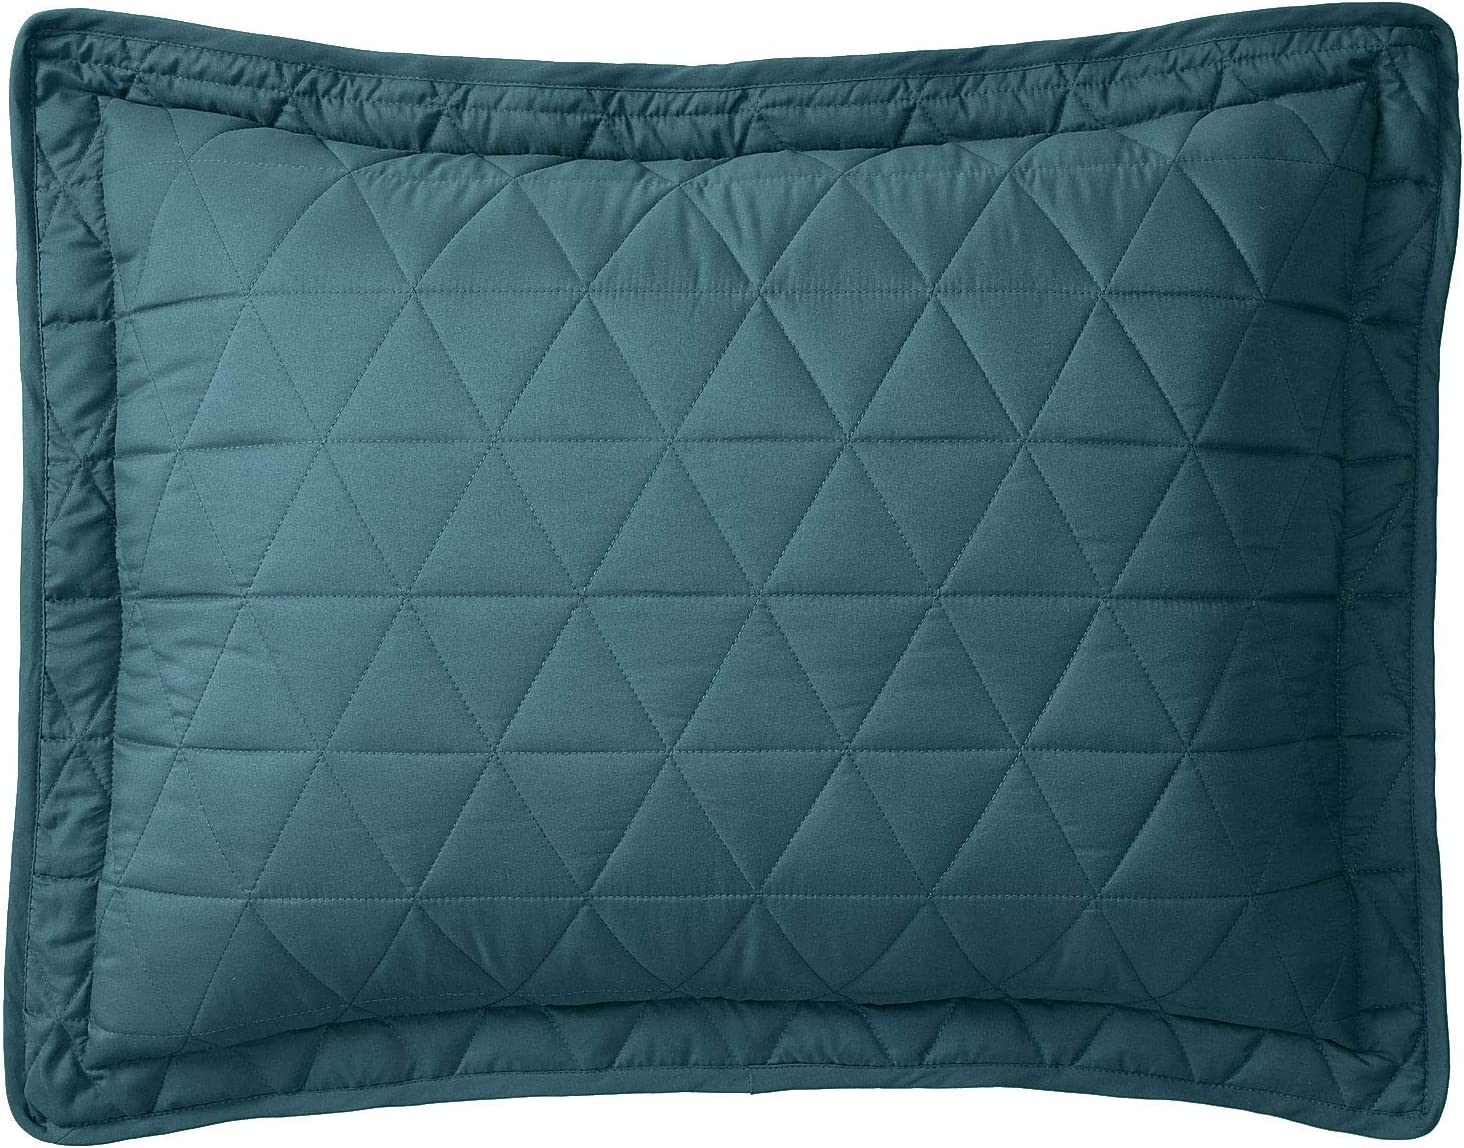 BrylaneHome Shams - Chicago Cash special price Mall King Turquoise 2 Pack Peacock